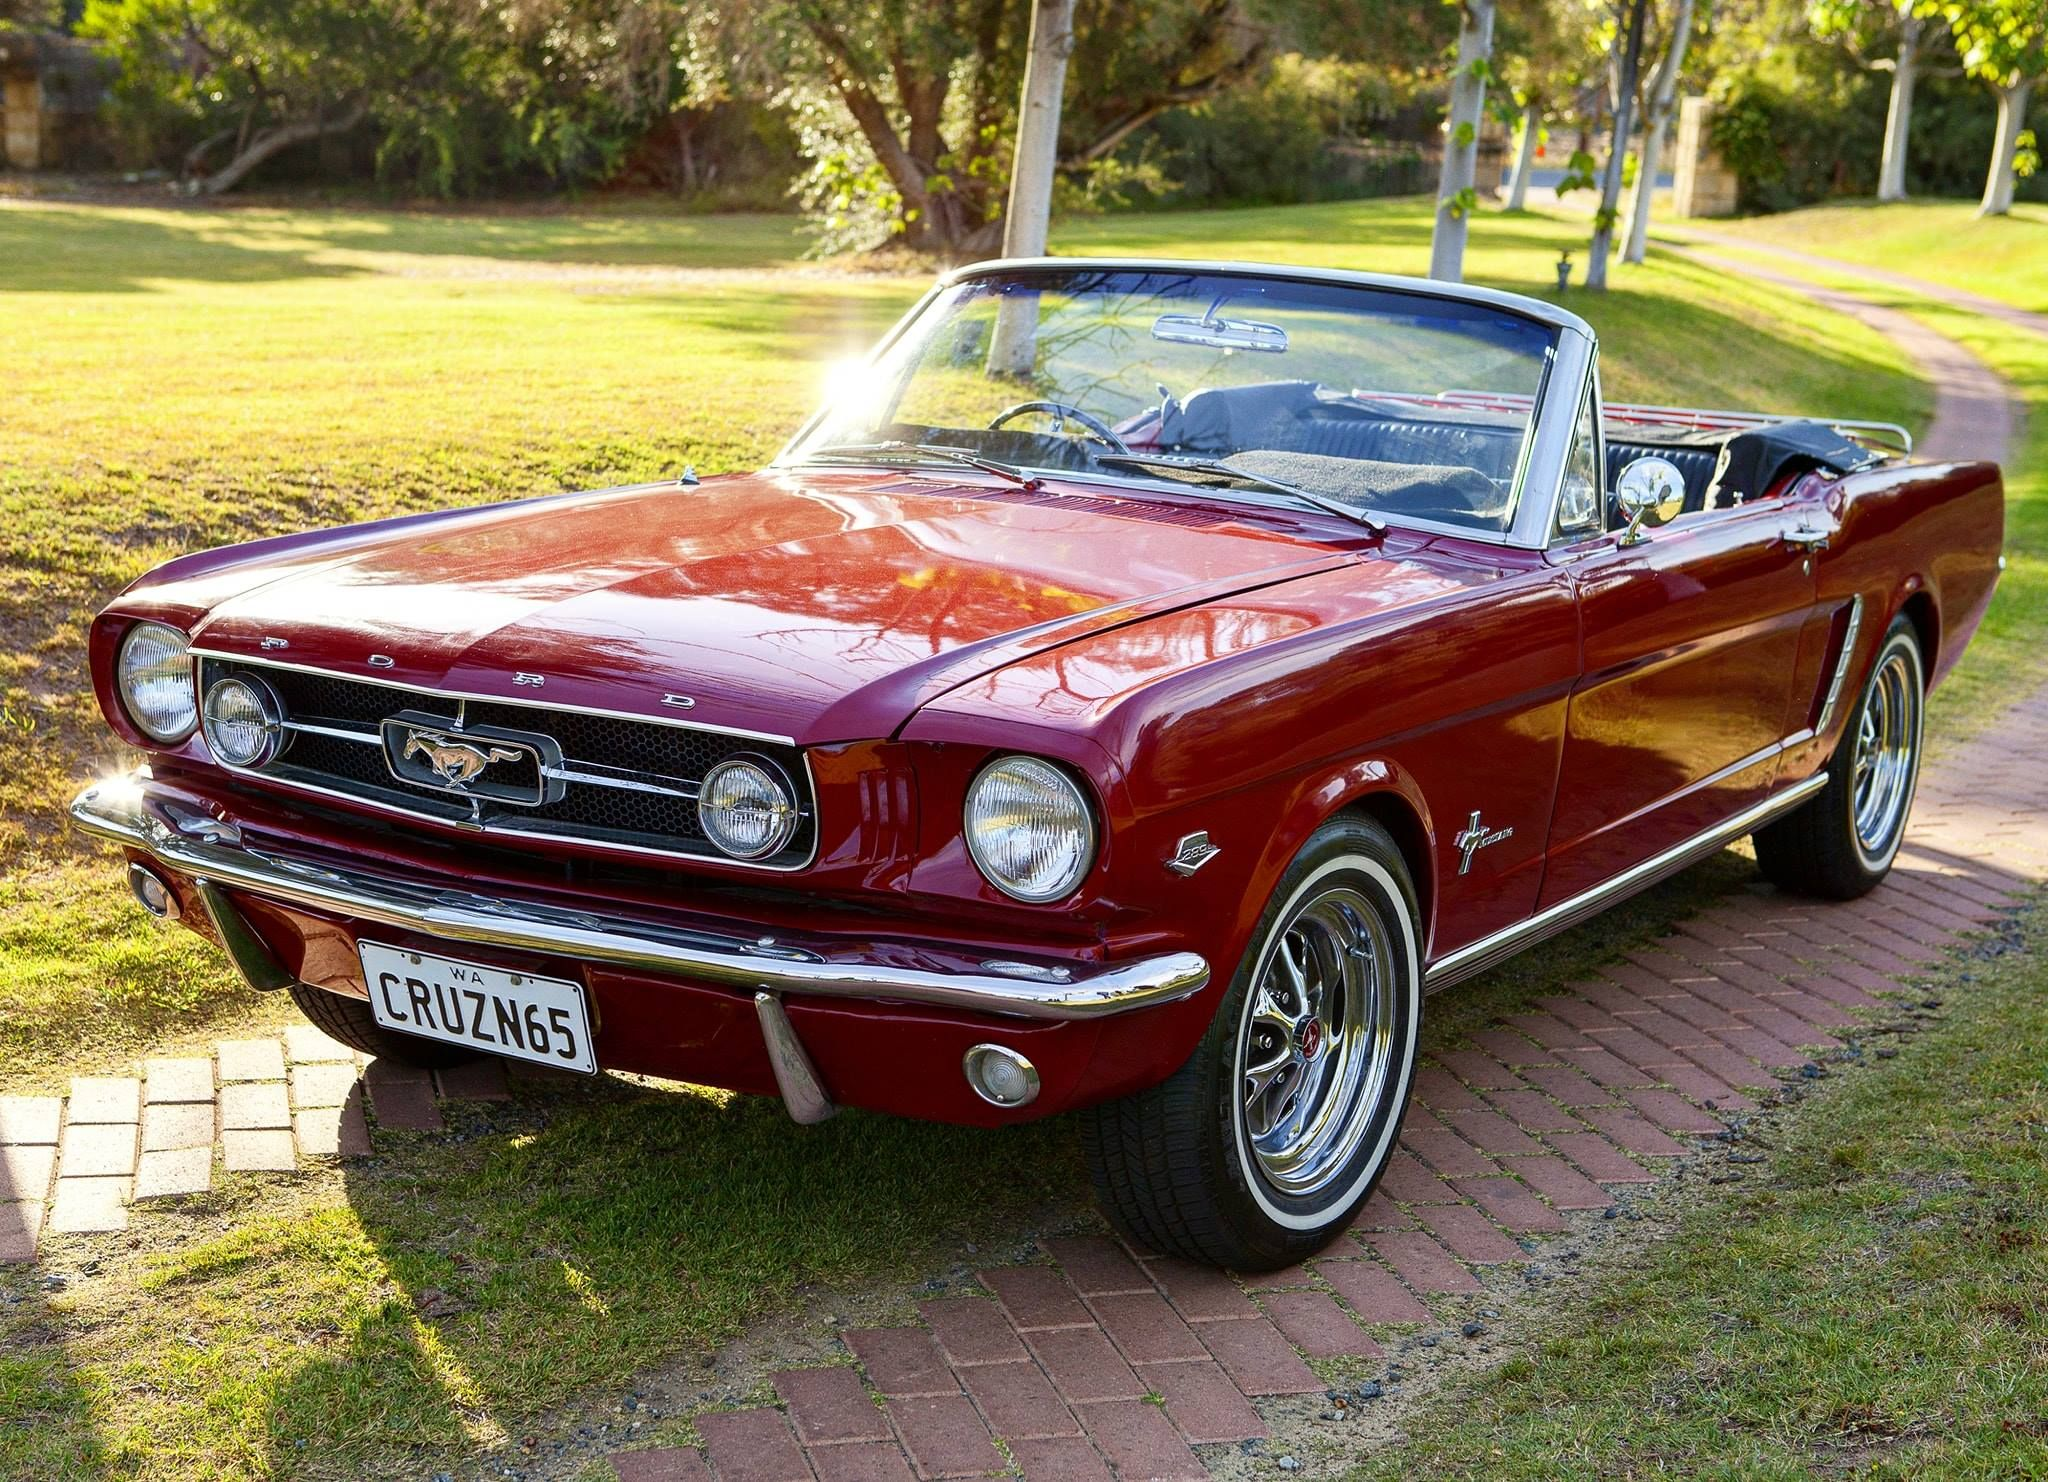 Watts family and their 1965 mustang convertible